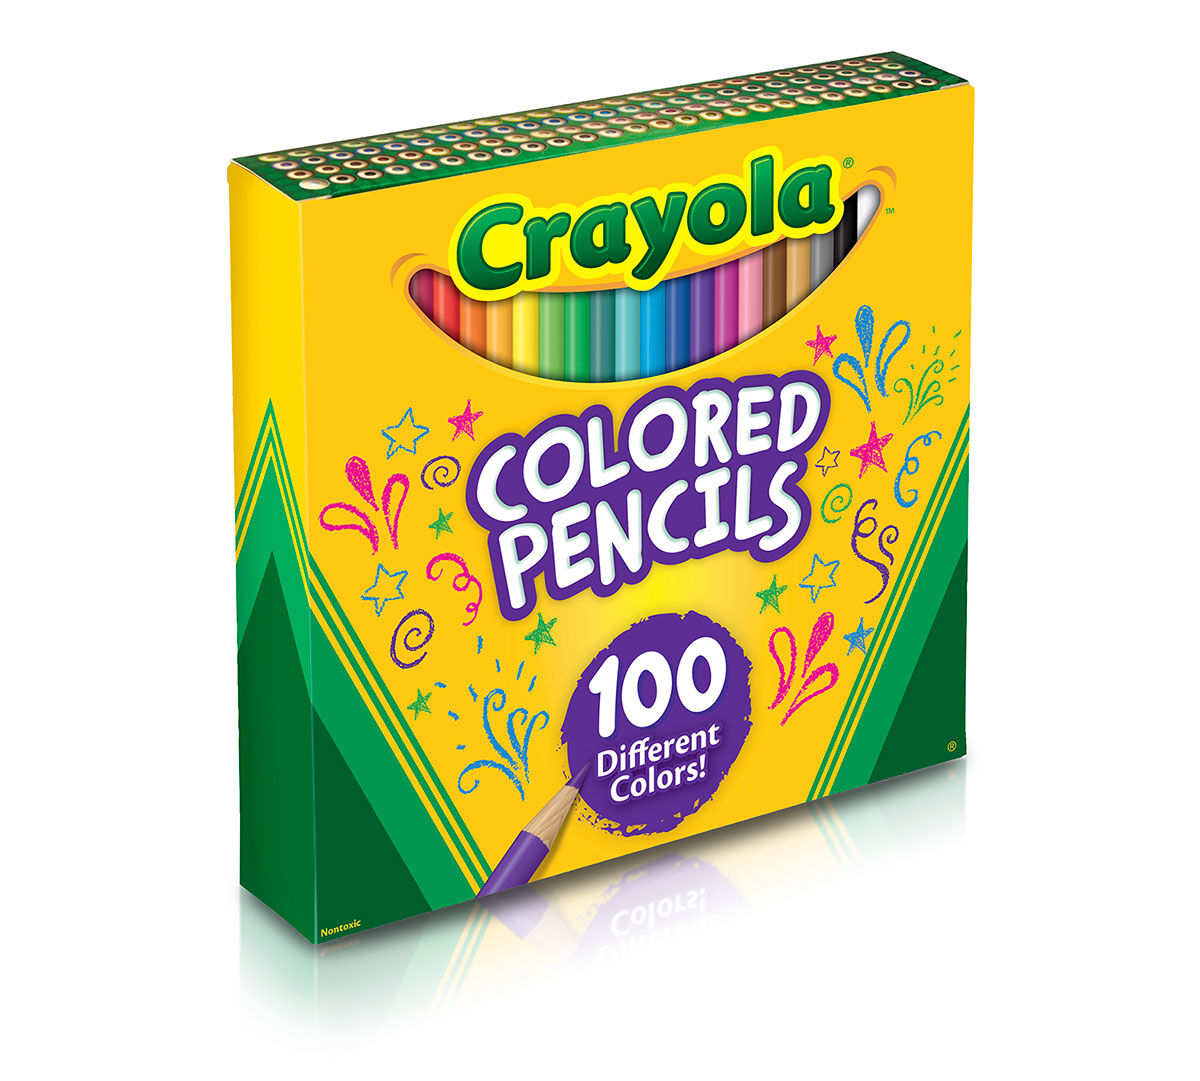 Crayola Colored Pencils 100 Count Vibrant Colors Pre Sharpened Art Tools Great For Adult